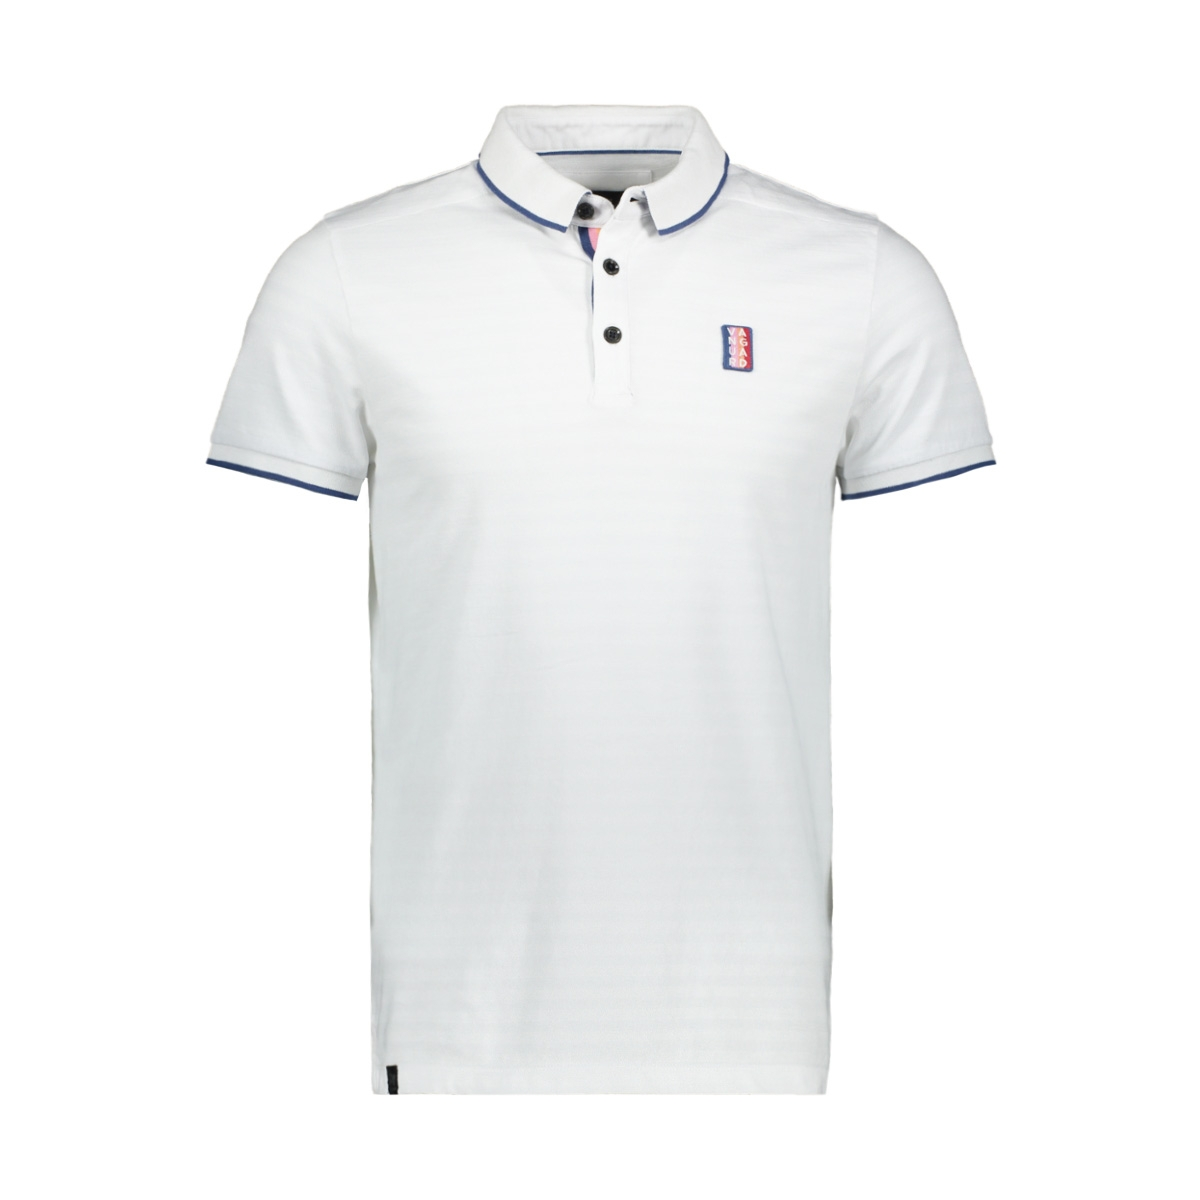 short sleeve jersey structure polo vpss203852 vanguard polo 7003